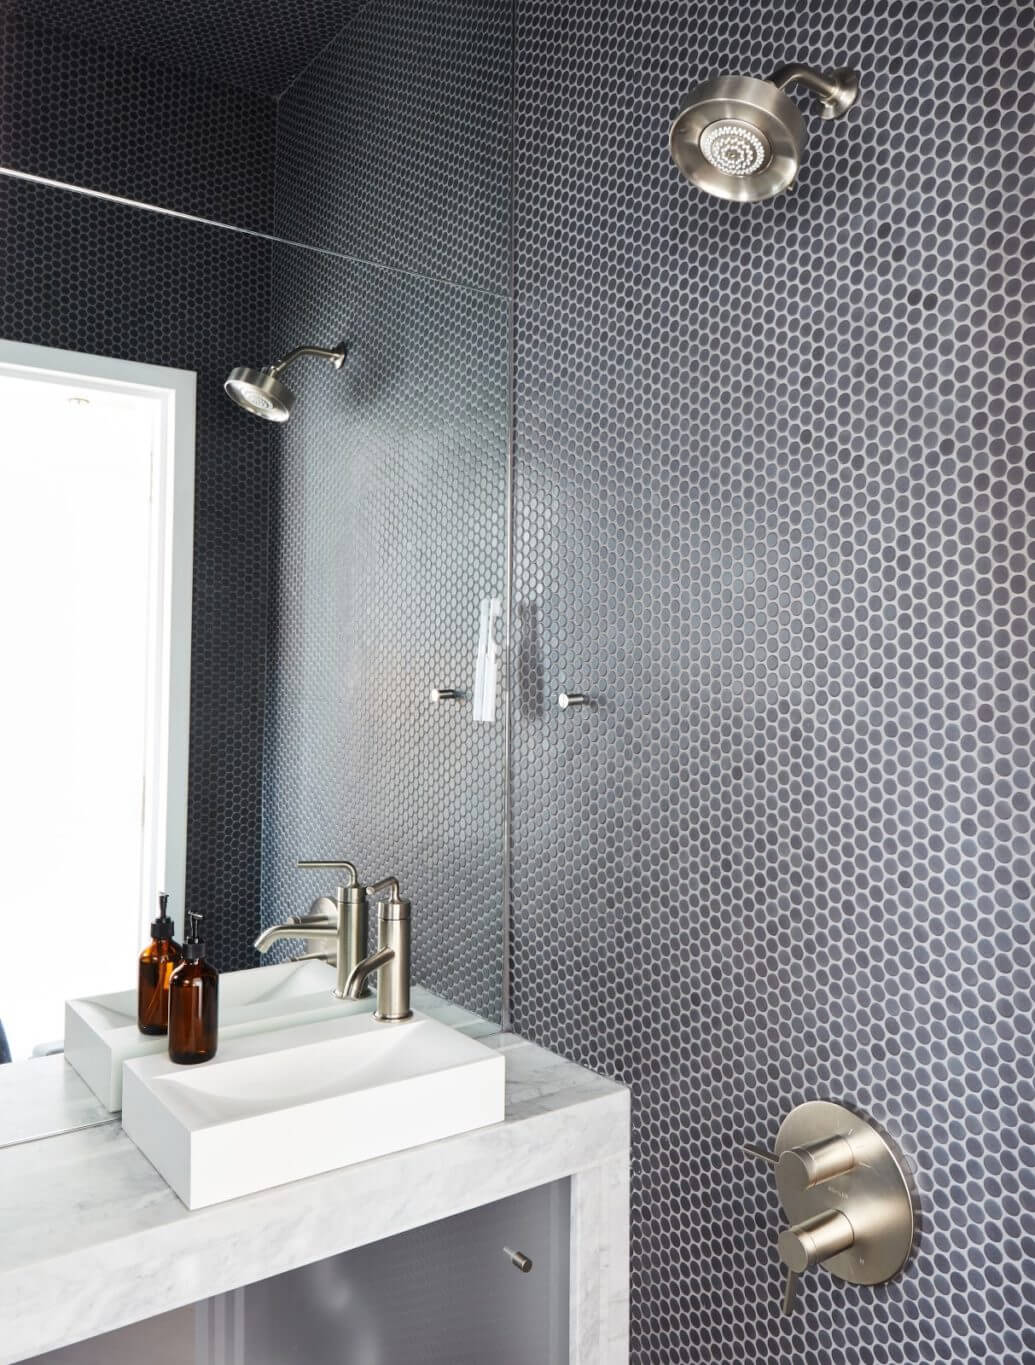 Bathroom with circle tile walls